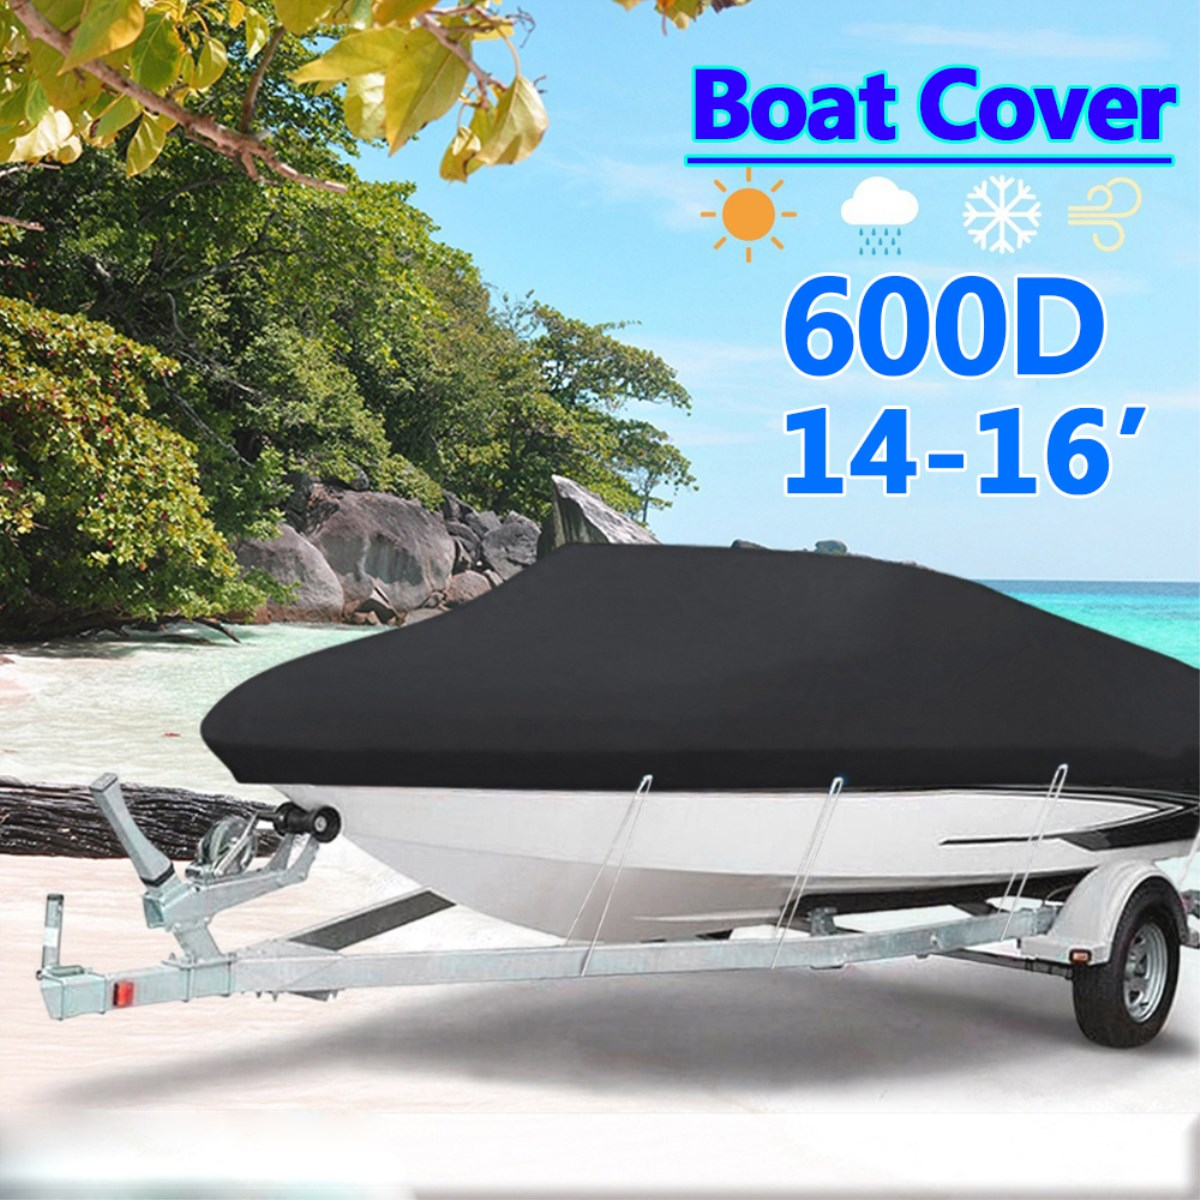 Black Heavy Duty 14-16ft 600D Beam 90inch Trailerable Marine Grade Boat Cover for Yacht Boat Waterproof Anti-UV Boat Accessories heavy duty 60v 600a marine dual battery selector switch for boat rv semi motor yacht boats red abd black page 9